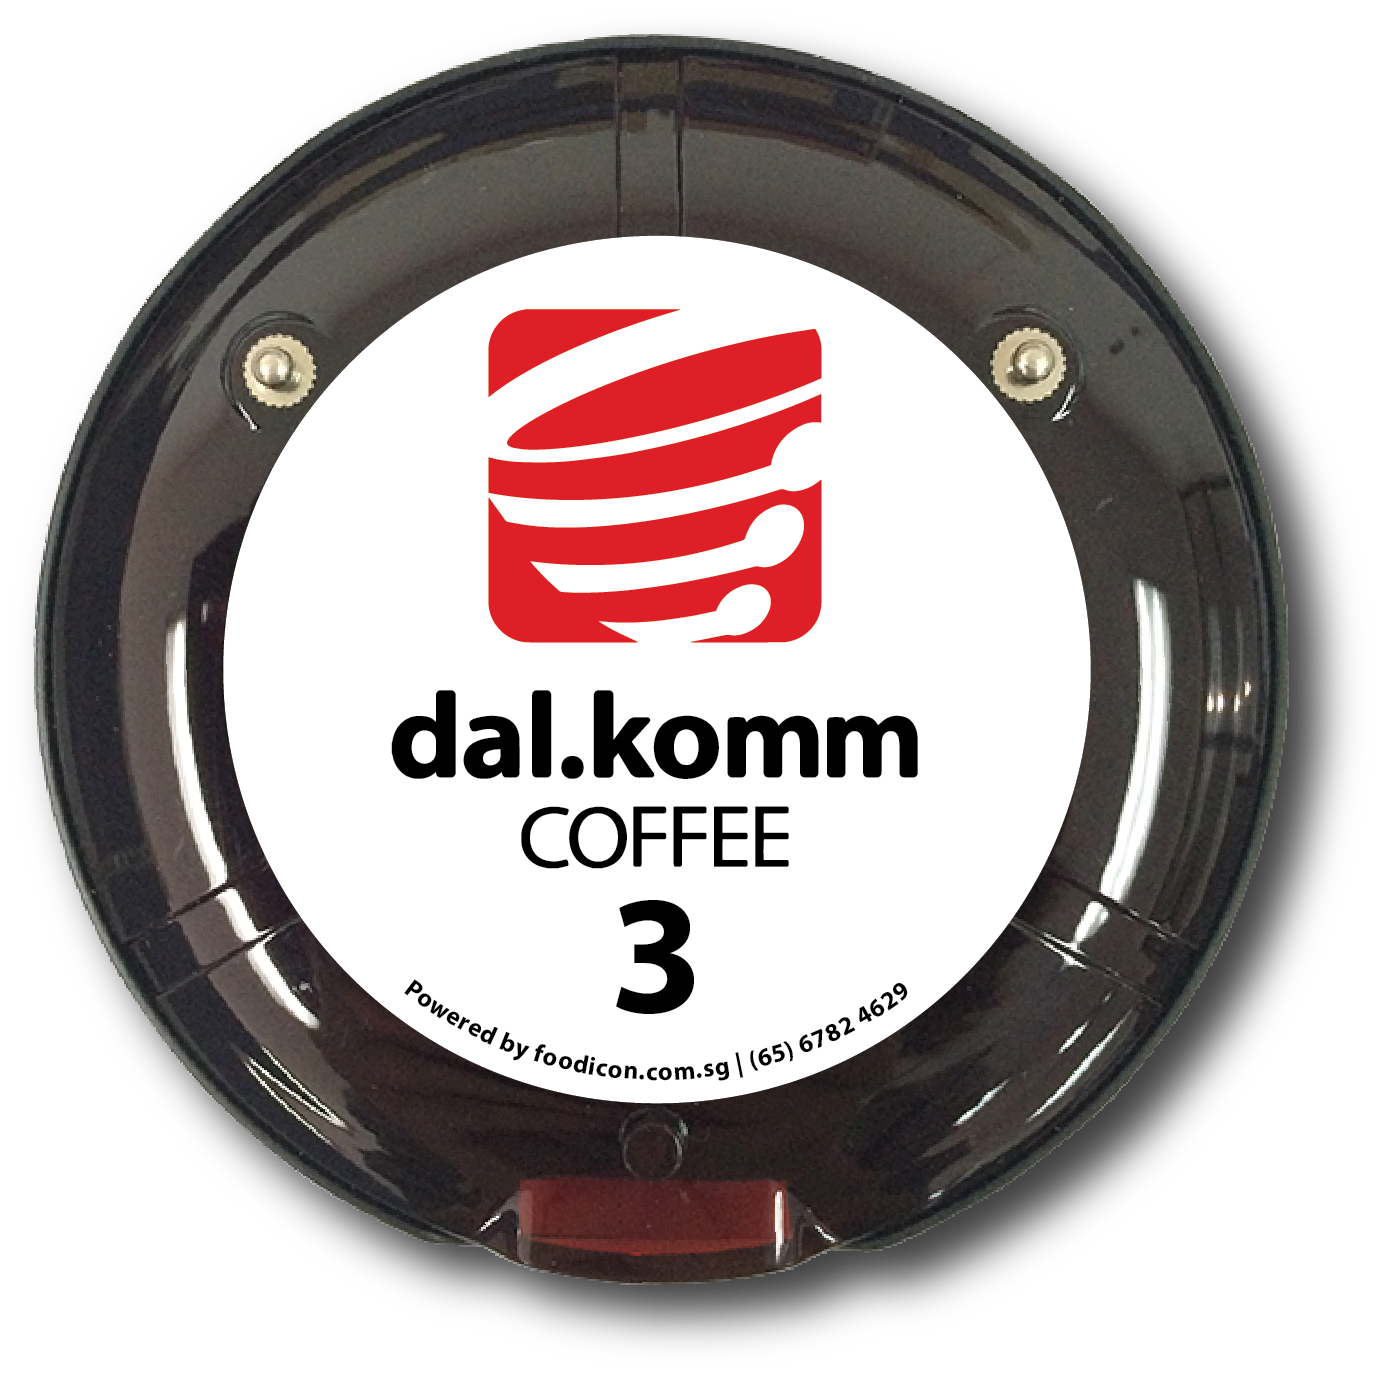 Food Icon Paging System - dal.komm Coffee